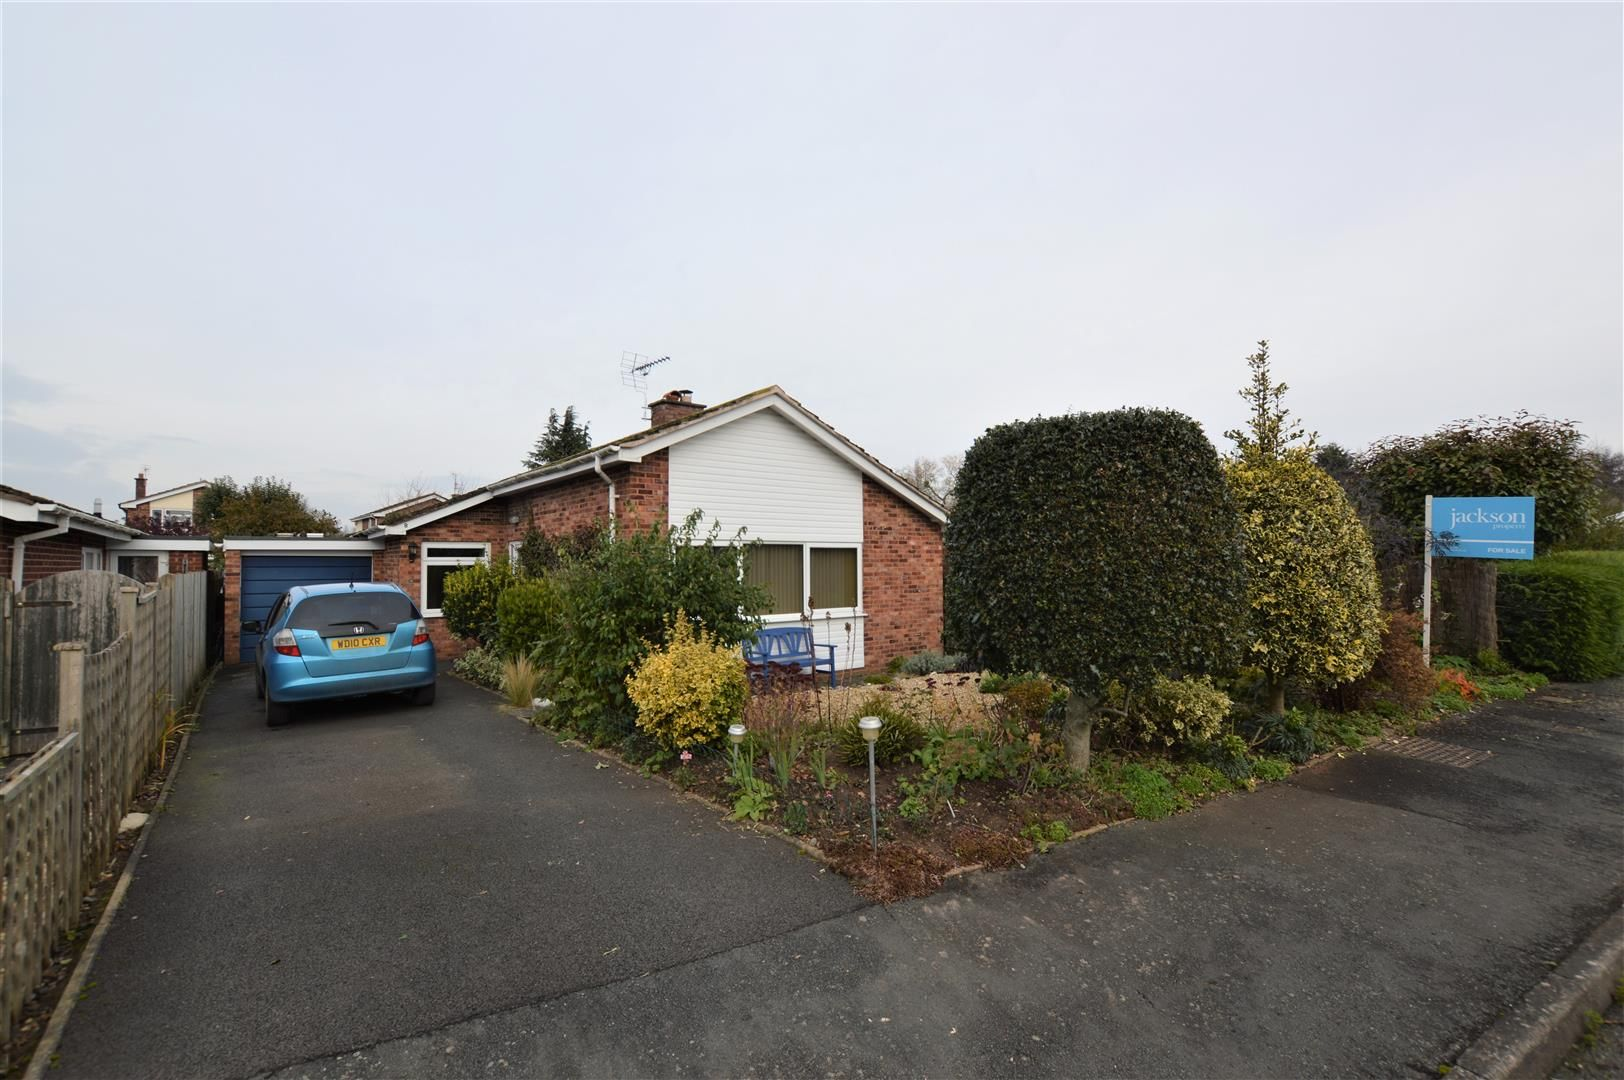 3 bed detached-bungalow for sale in Bodenham  - Property Image 1